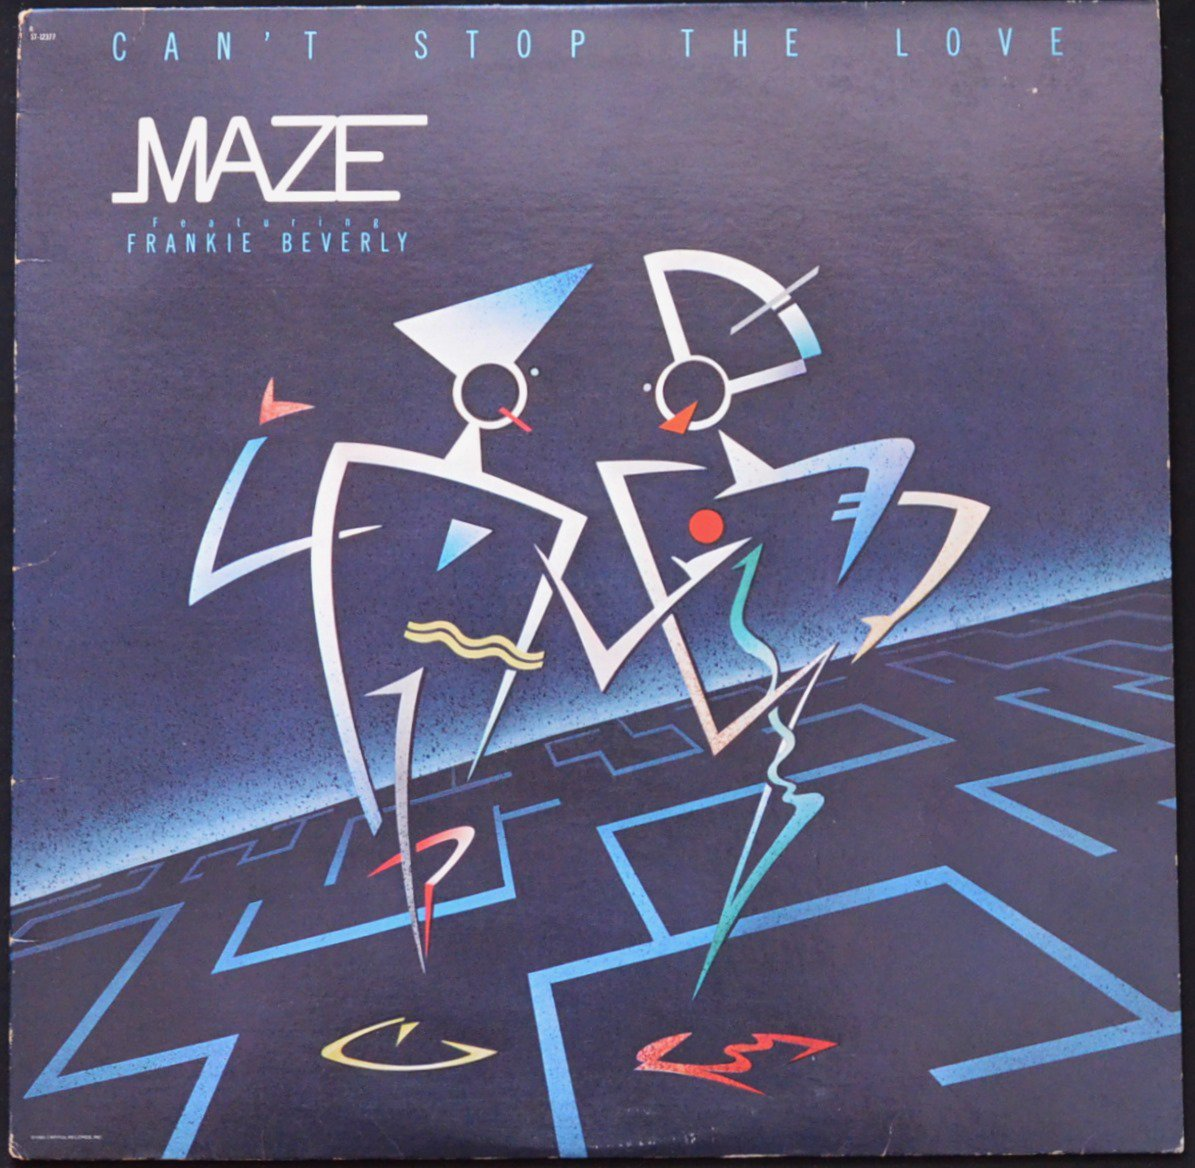 MAZE FEATURING FRANKIE BEVERLY / CAN'T STOP THE LOVE (LP)